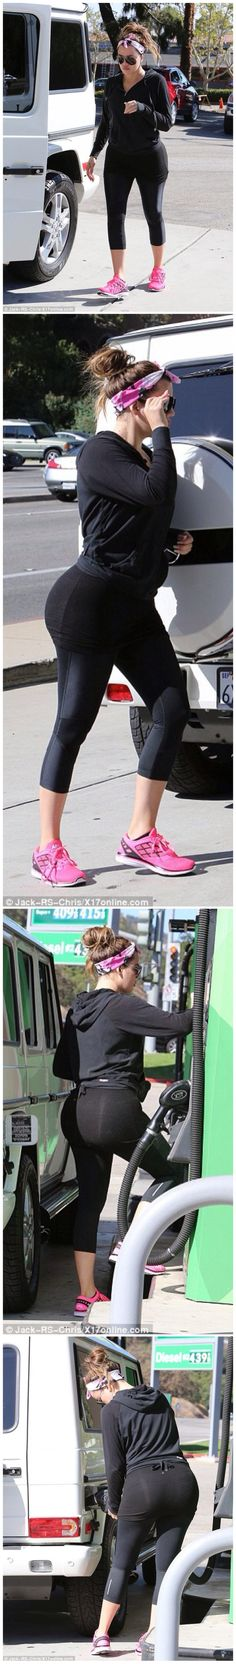 Keeping up with her fitness regime! Khloe Kardashian shows off her shapely rear in figure-hugging gym gear as she enjoys early morning workout.